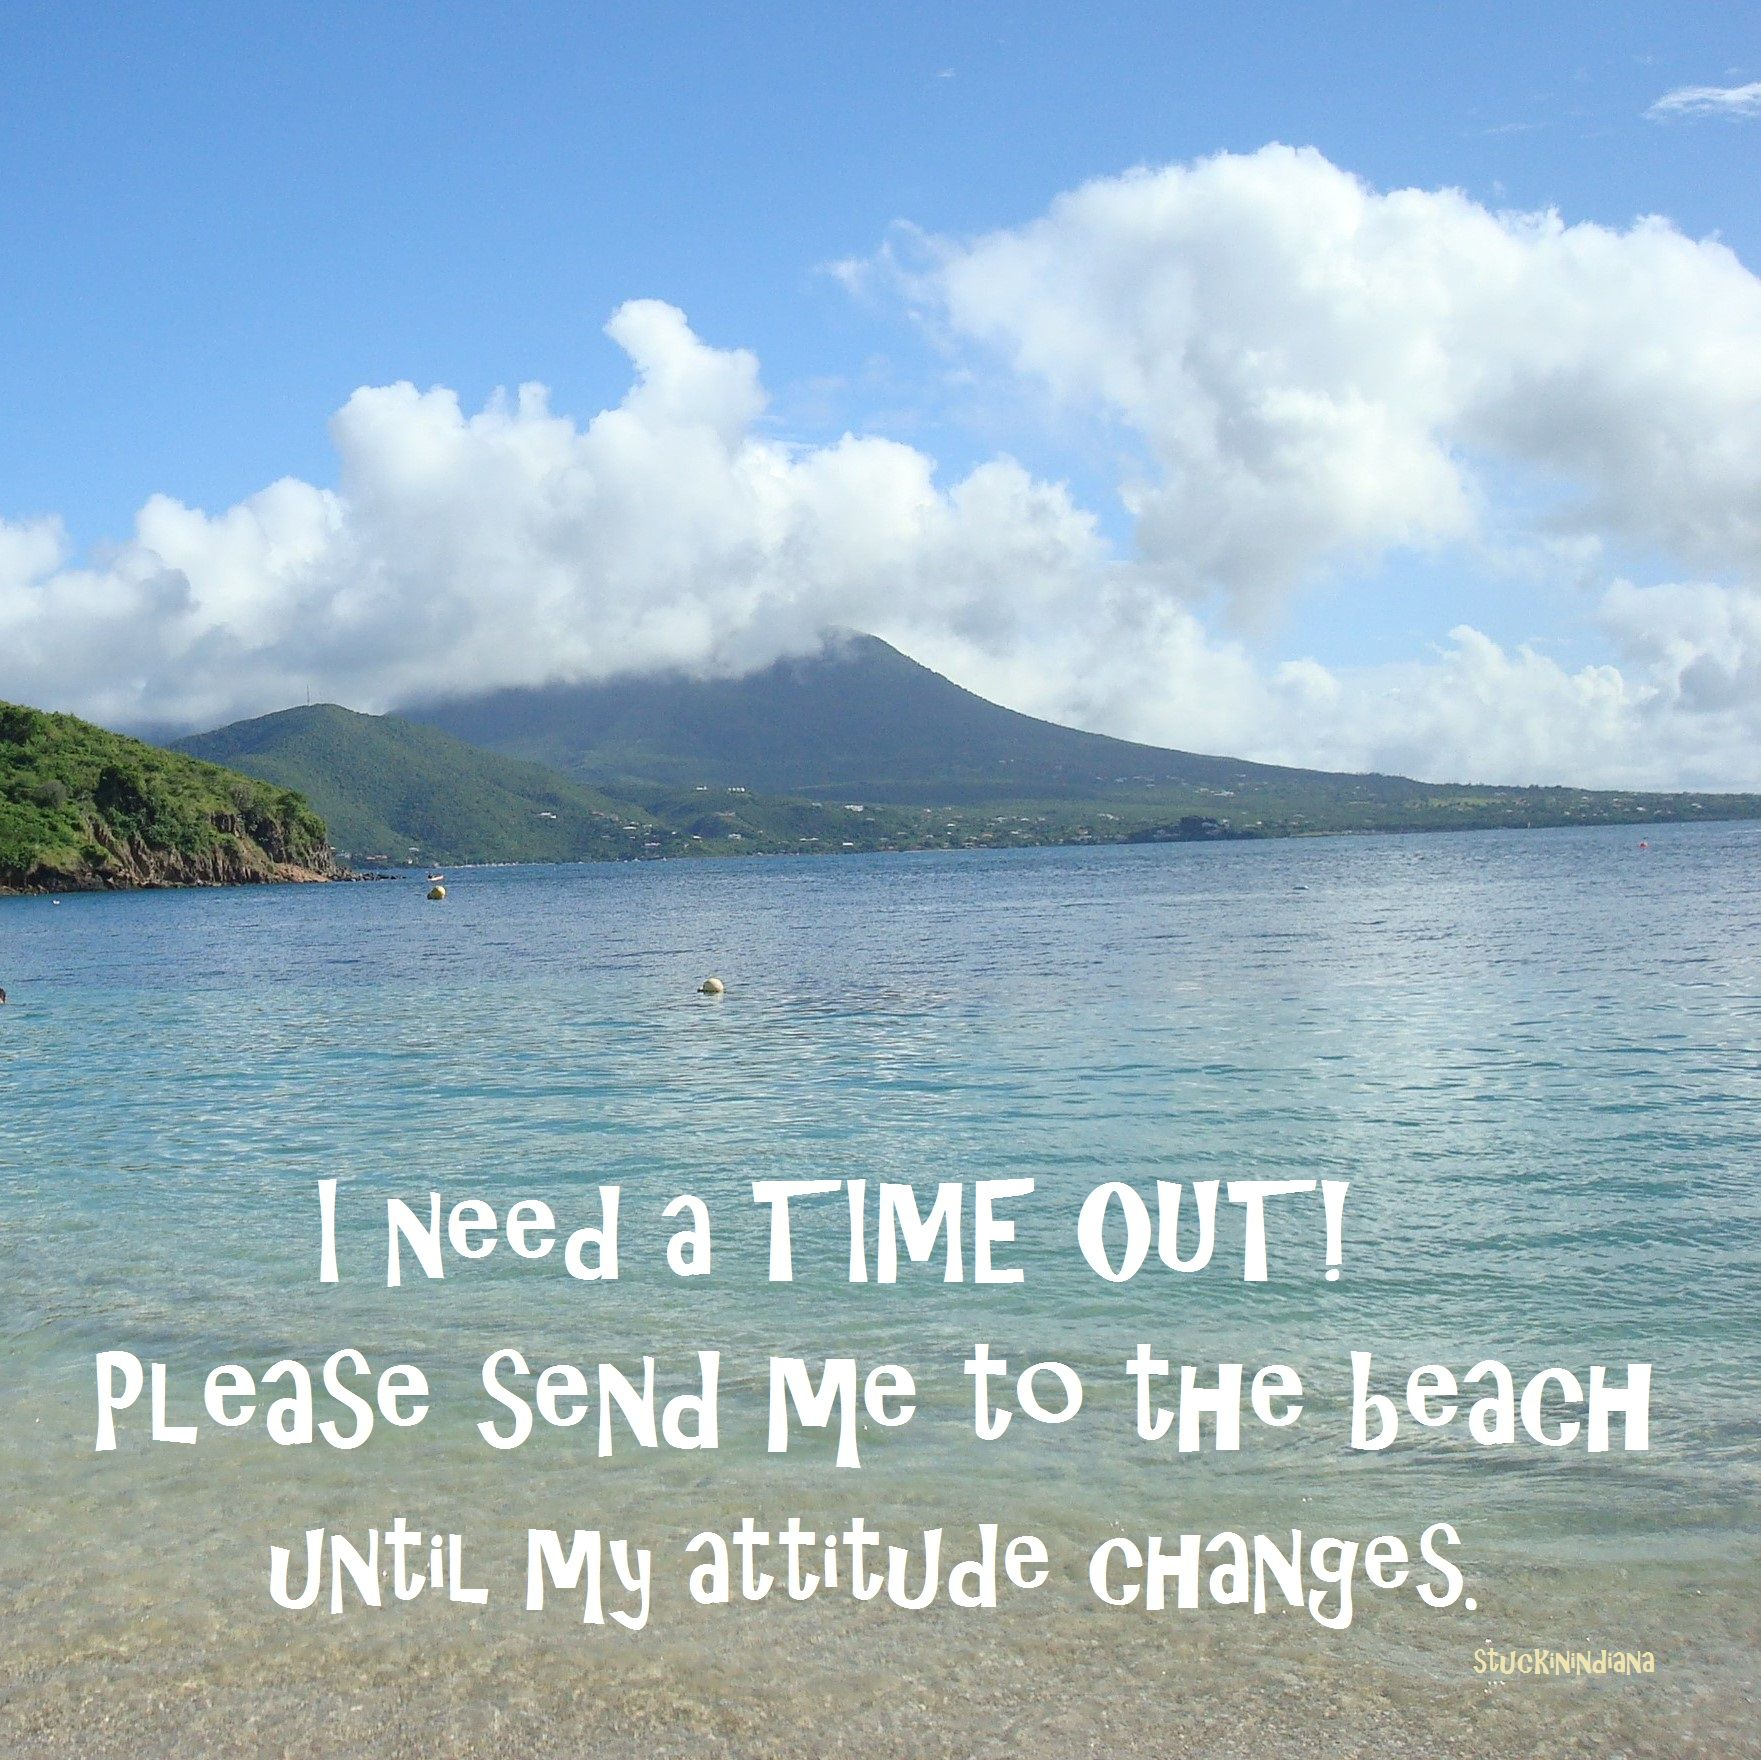 I need a TIME OUT!!! Please send me to the beach until my attitude changes.